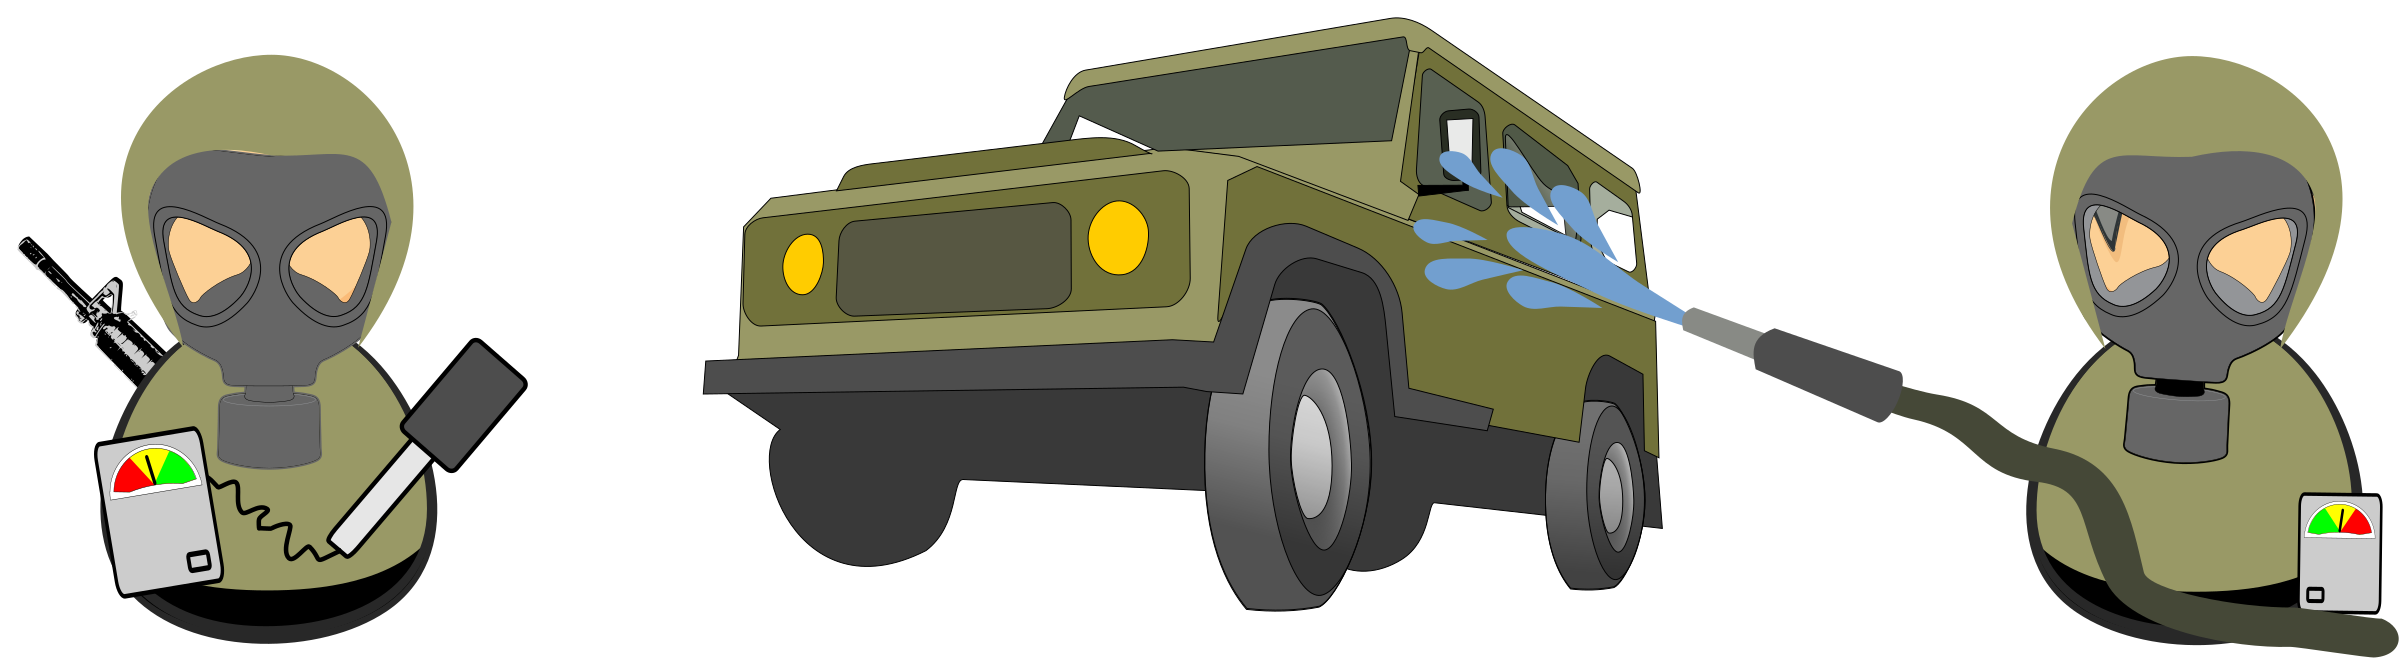 HAZMAT military car decontamination by Juhele